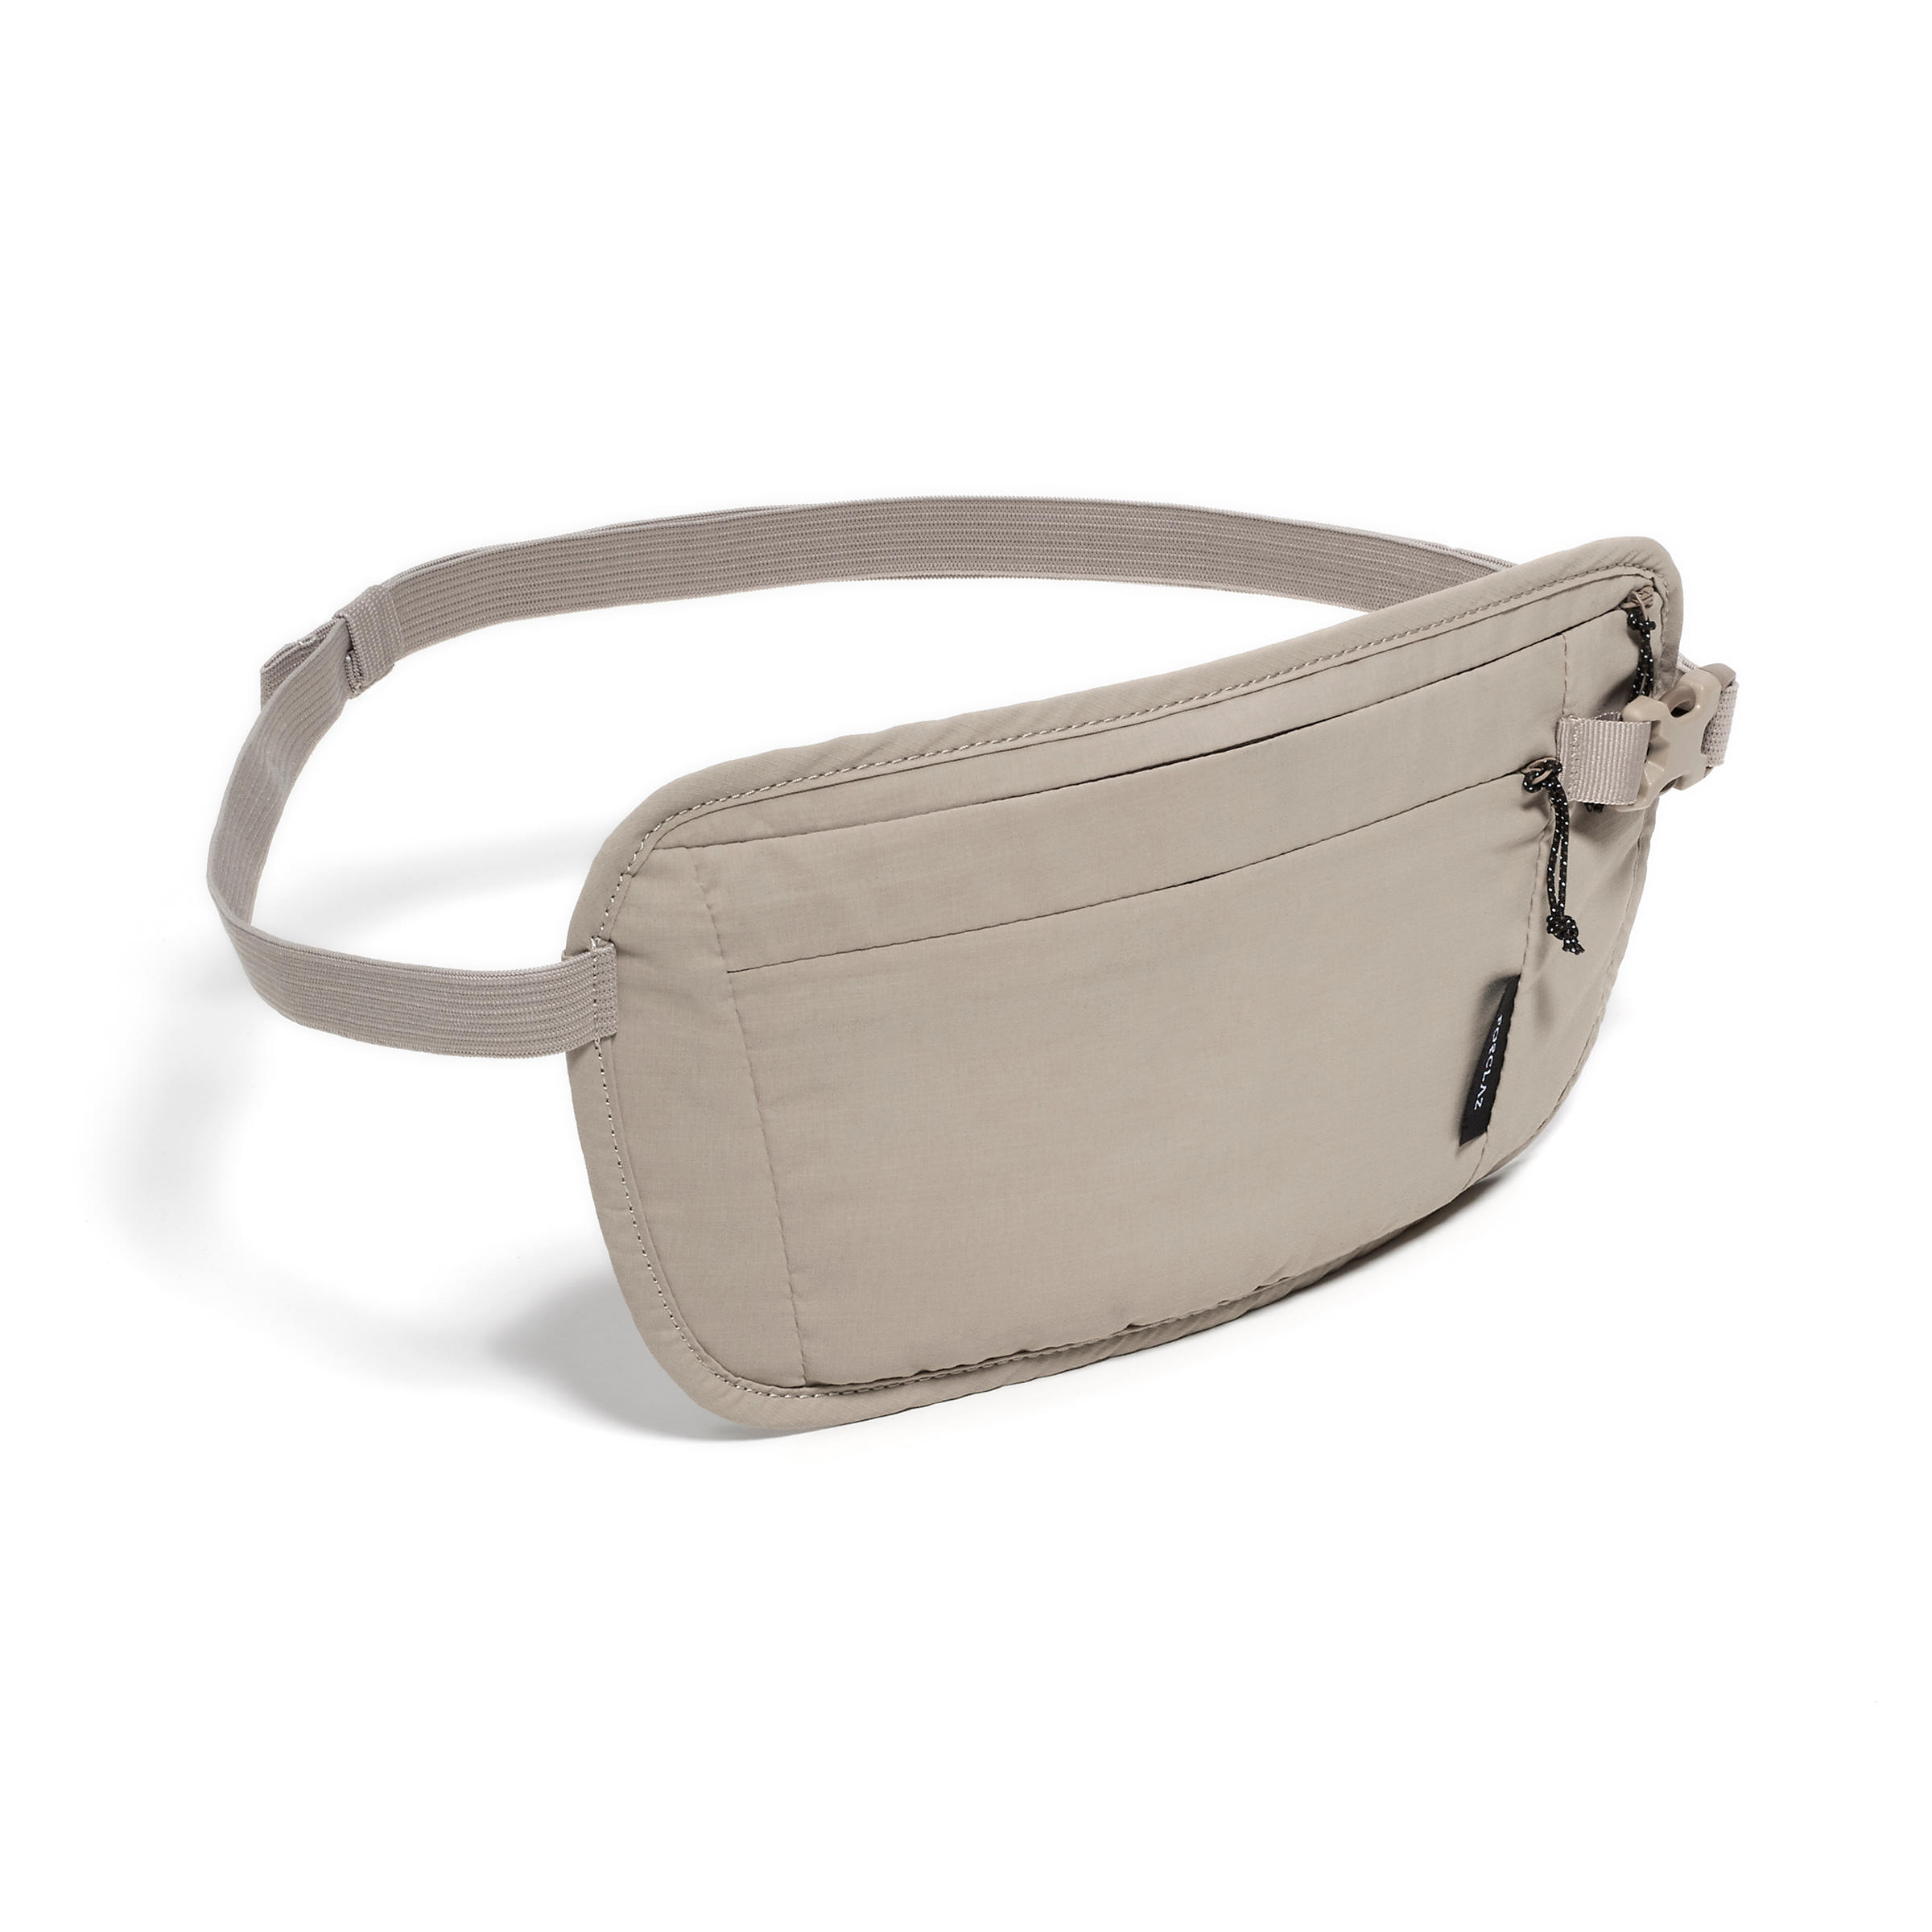 Pouch/bumbag to travel peacefully.